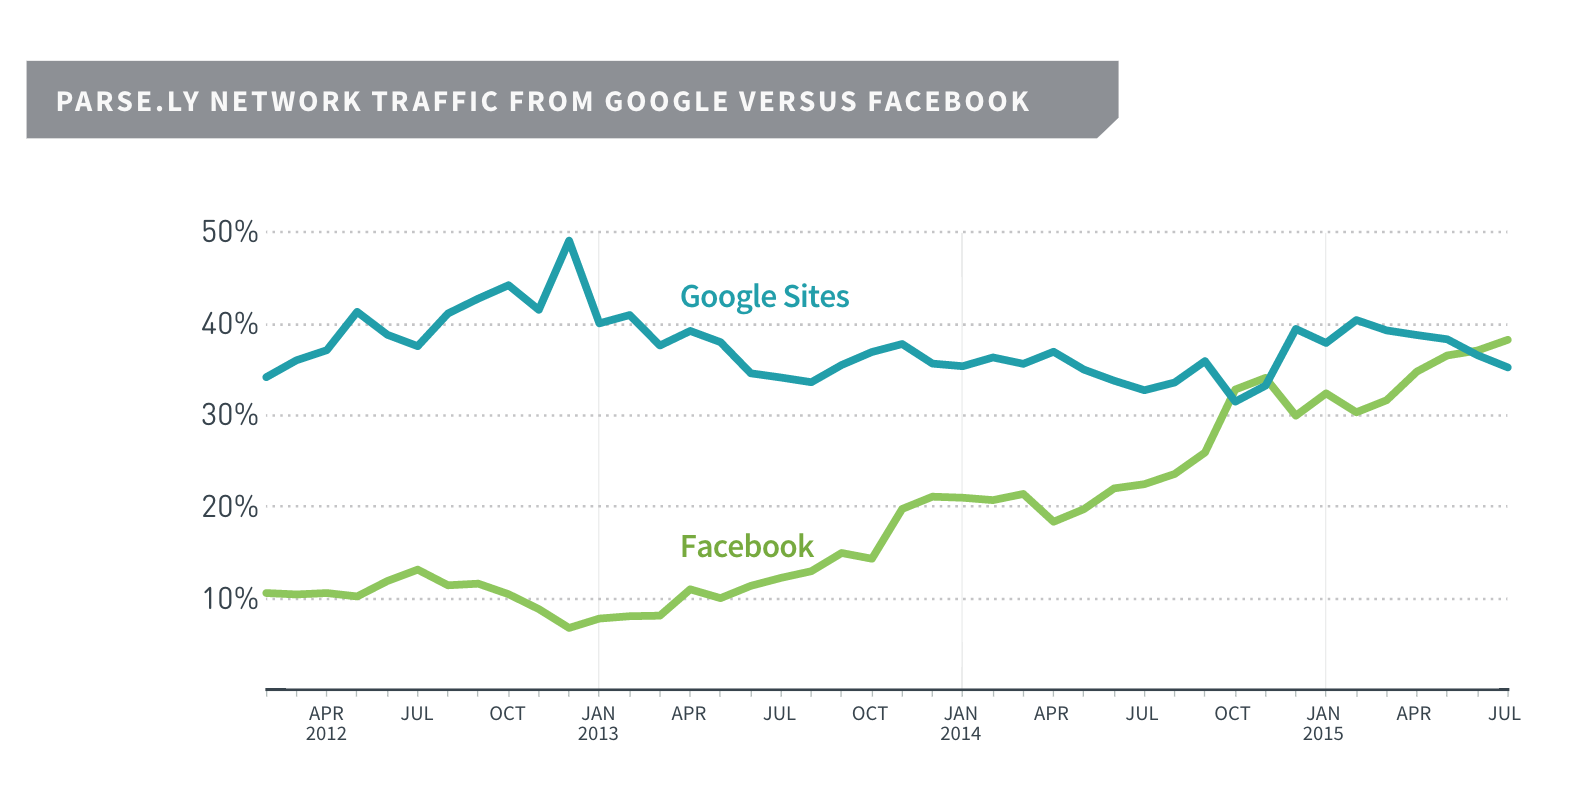 Parsley traffic FB vs Google